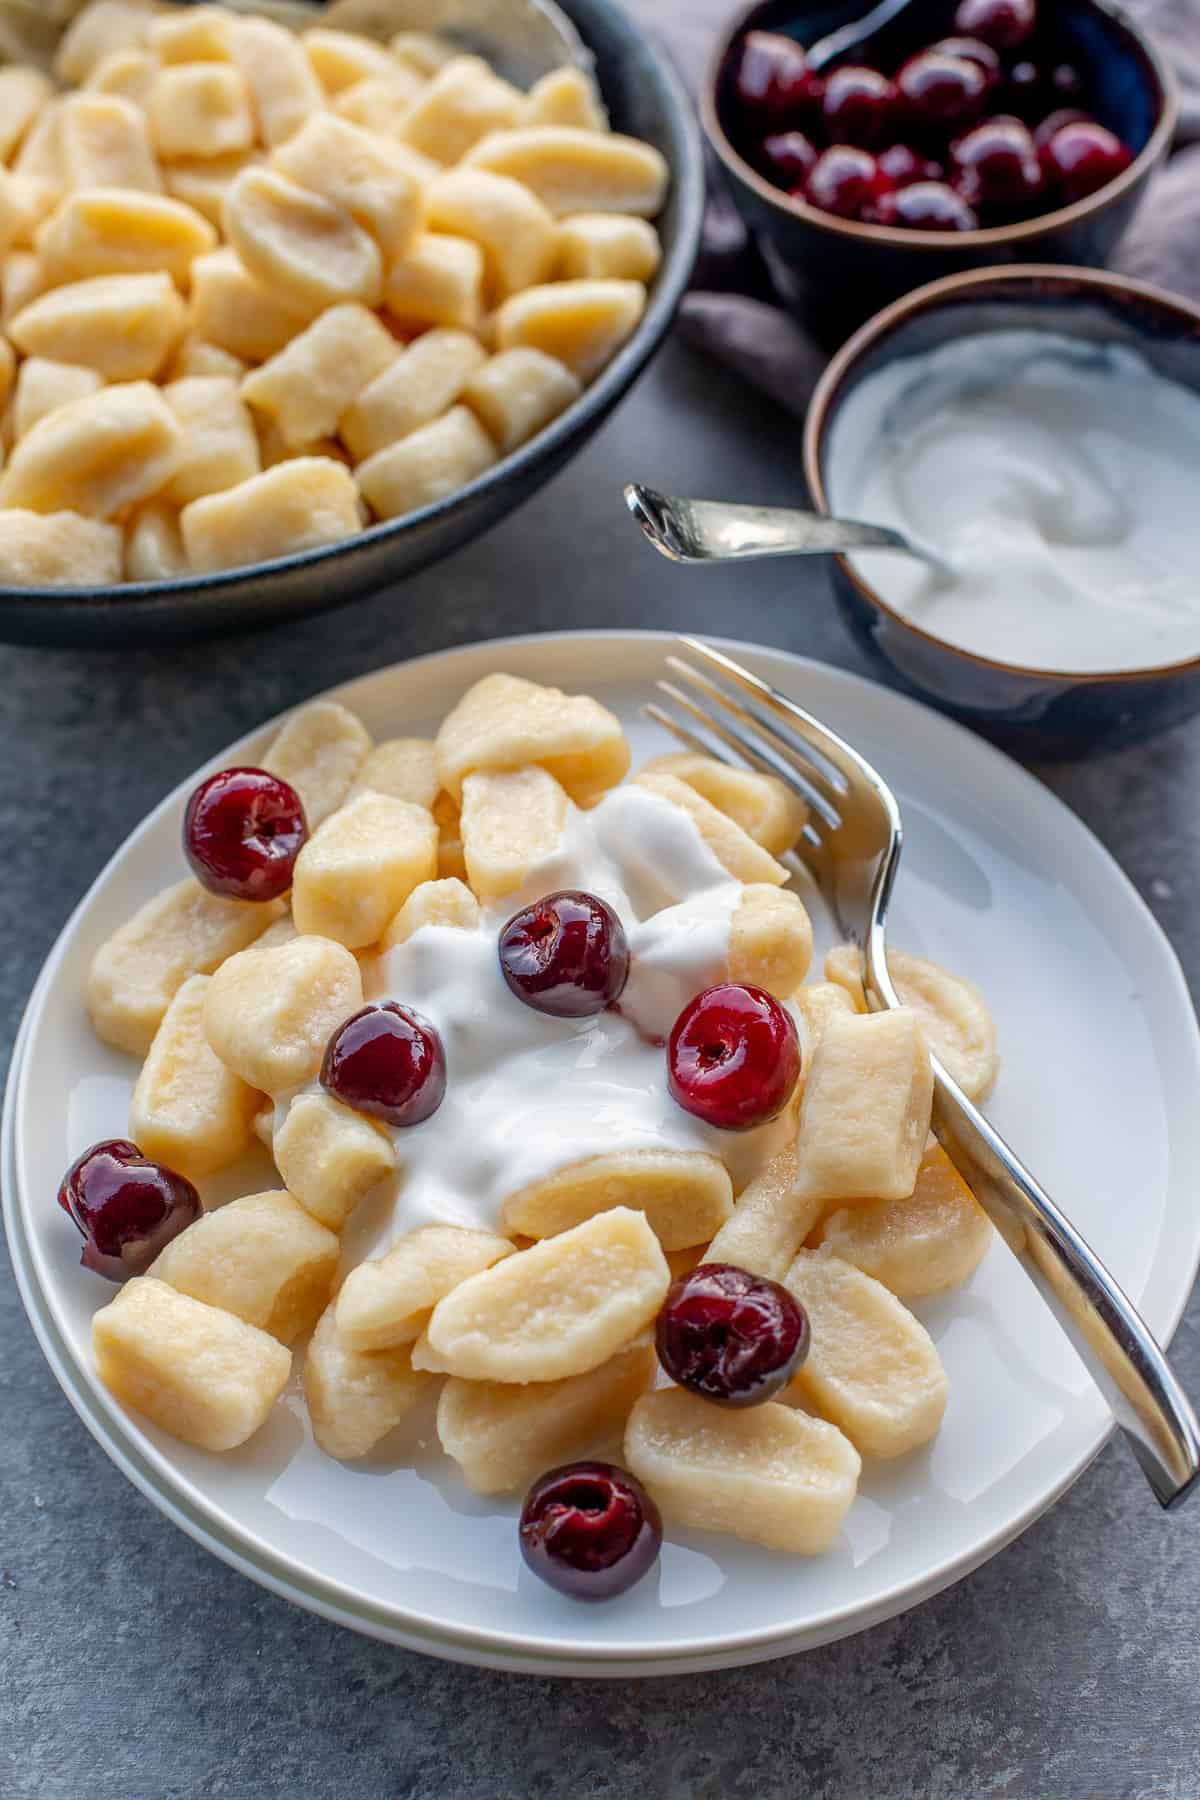 Plates with lazy pierogi, drizzled with sweetened sour cream and cherries.